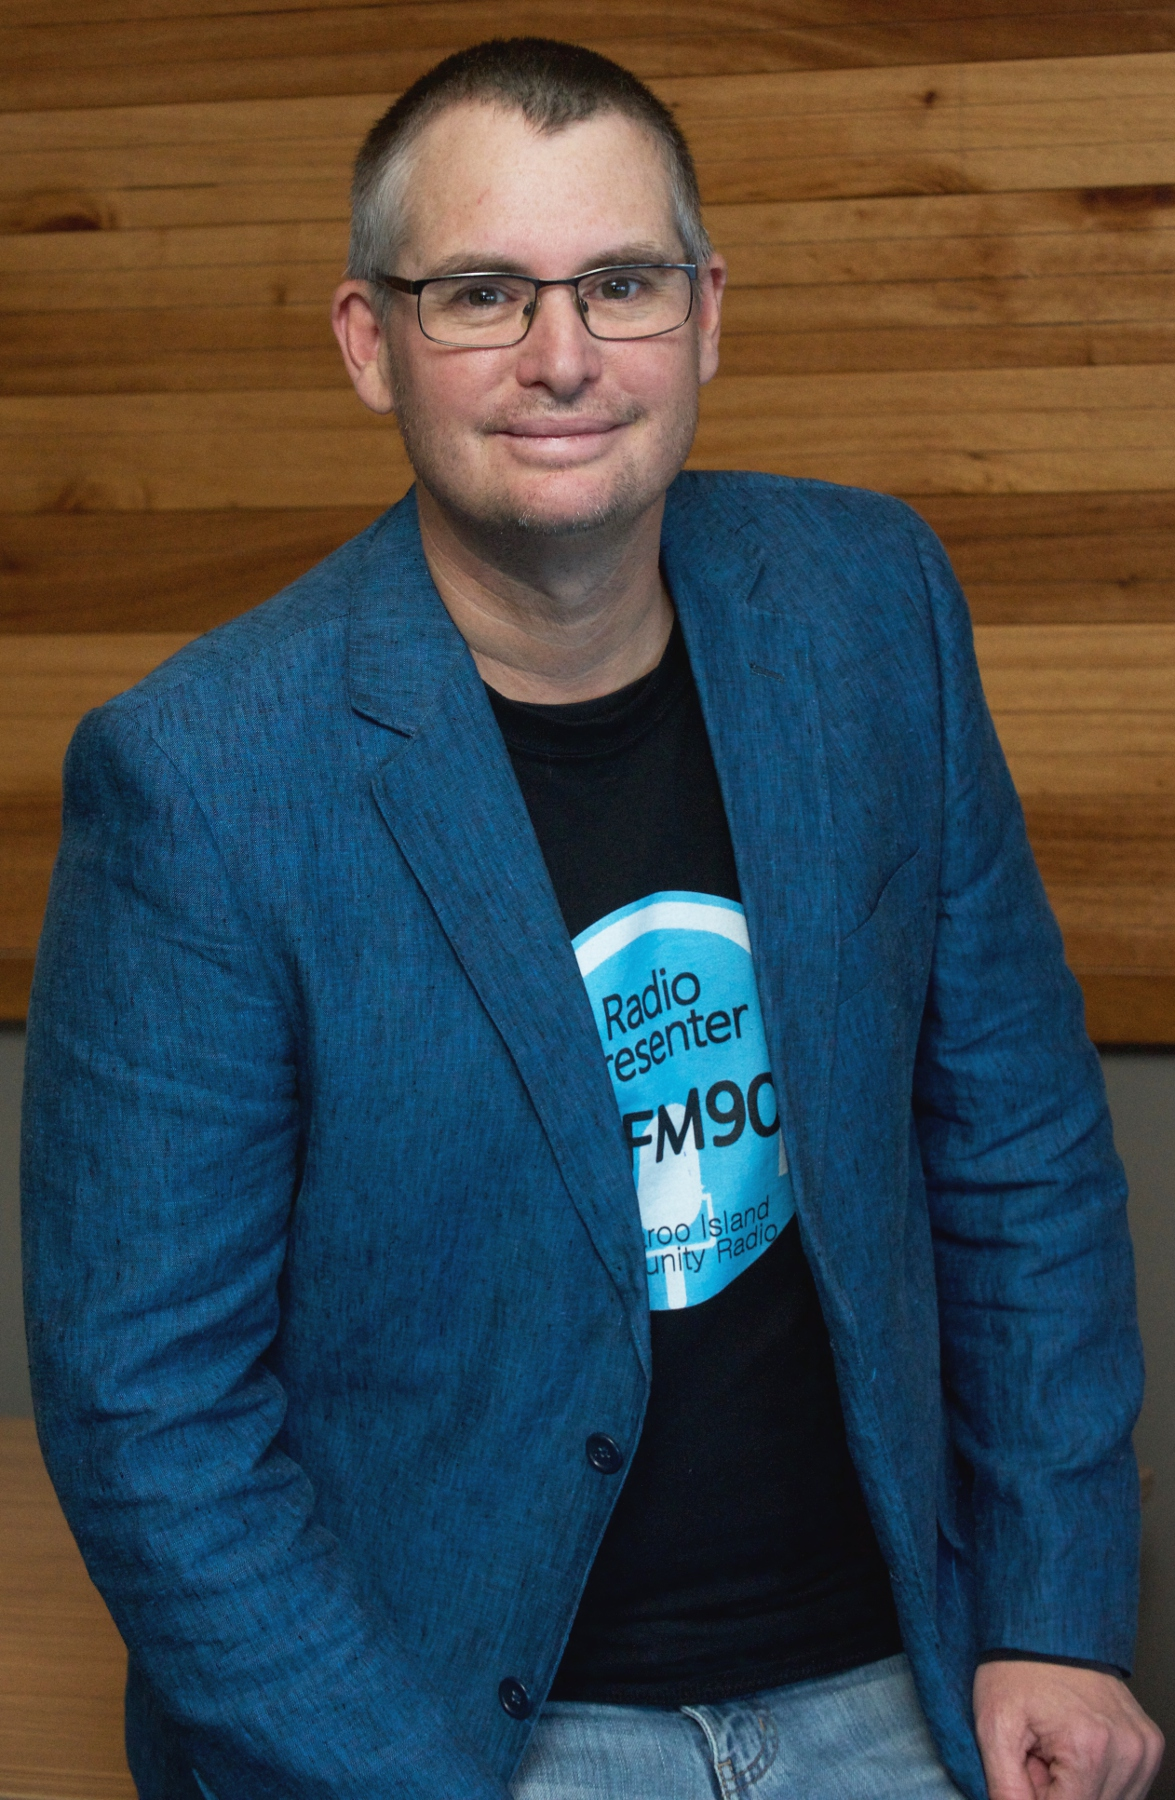 Portrait photograph of Stephen in Blue Jacket and 5KIxFM tshirt.